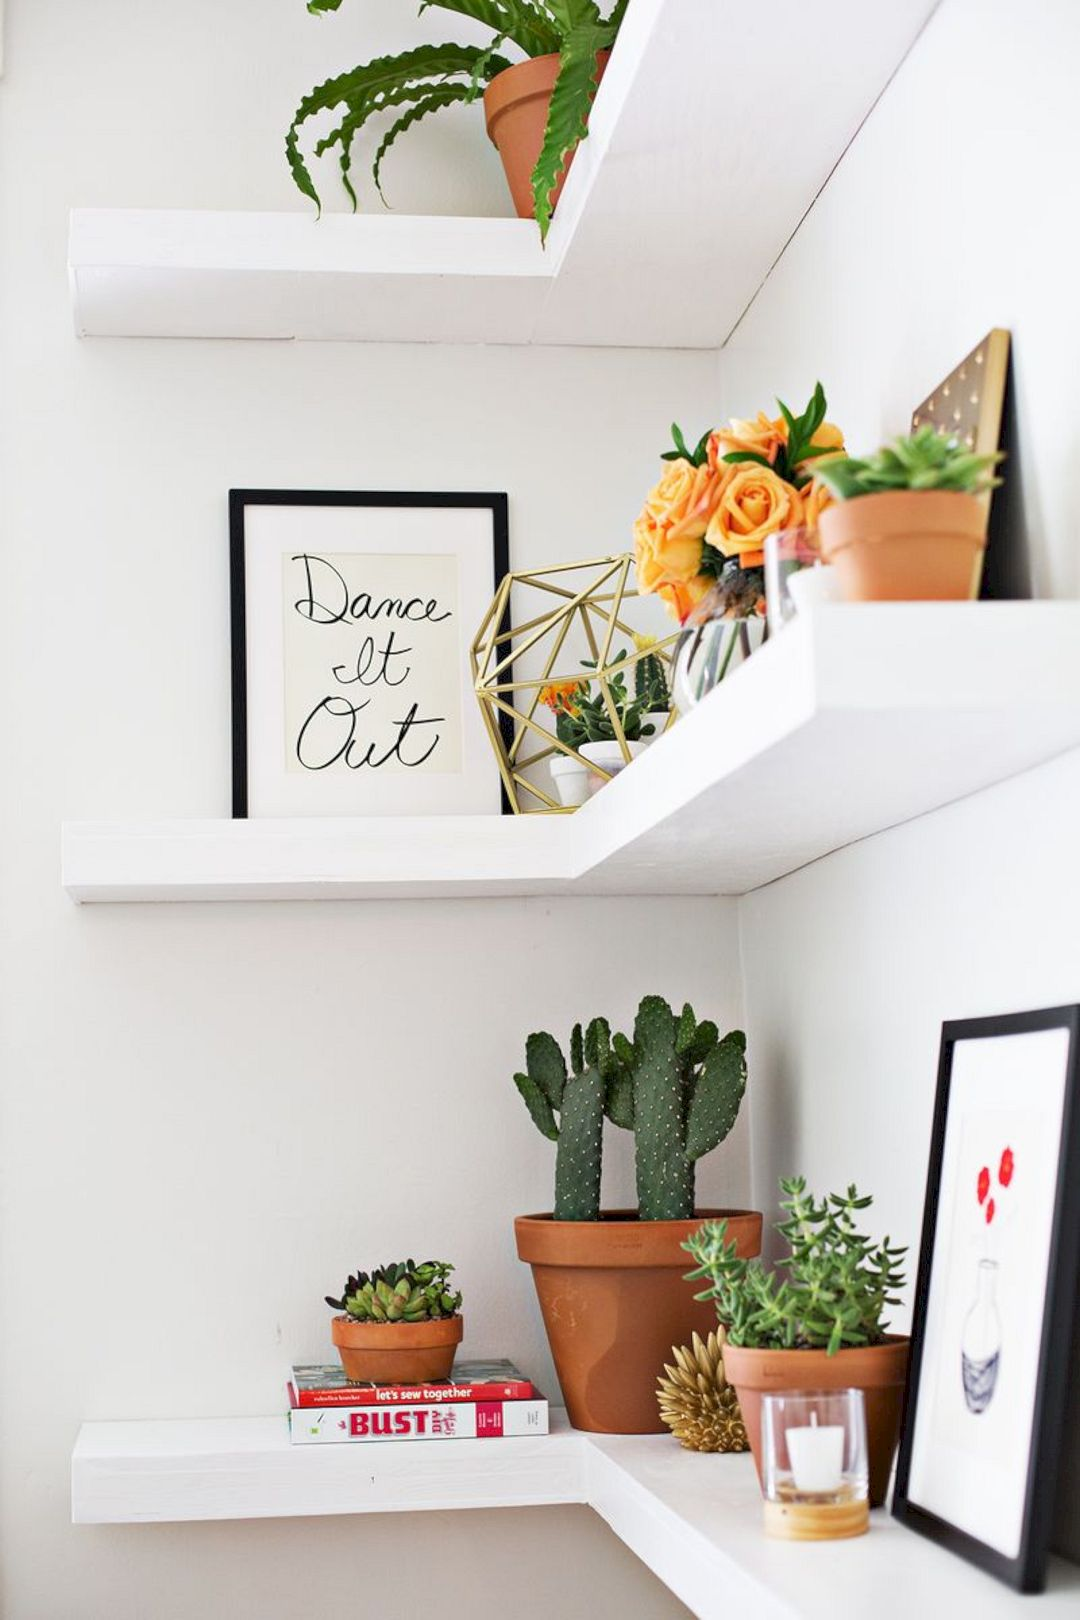 23 Stunningly Corner Shelf Ideas A Guide For Housekeeping